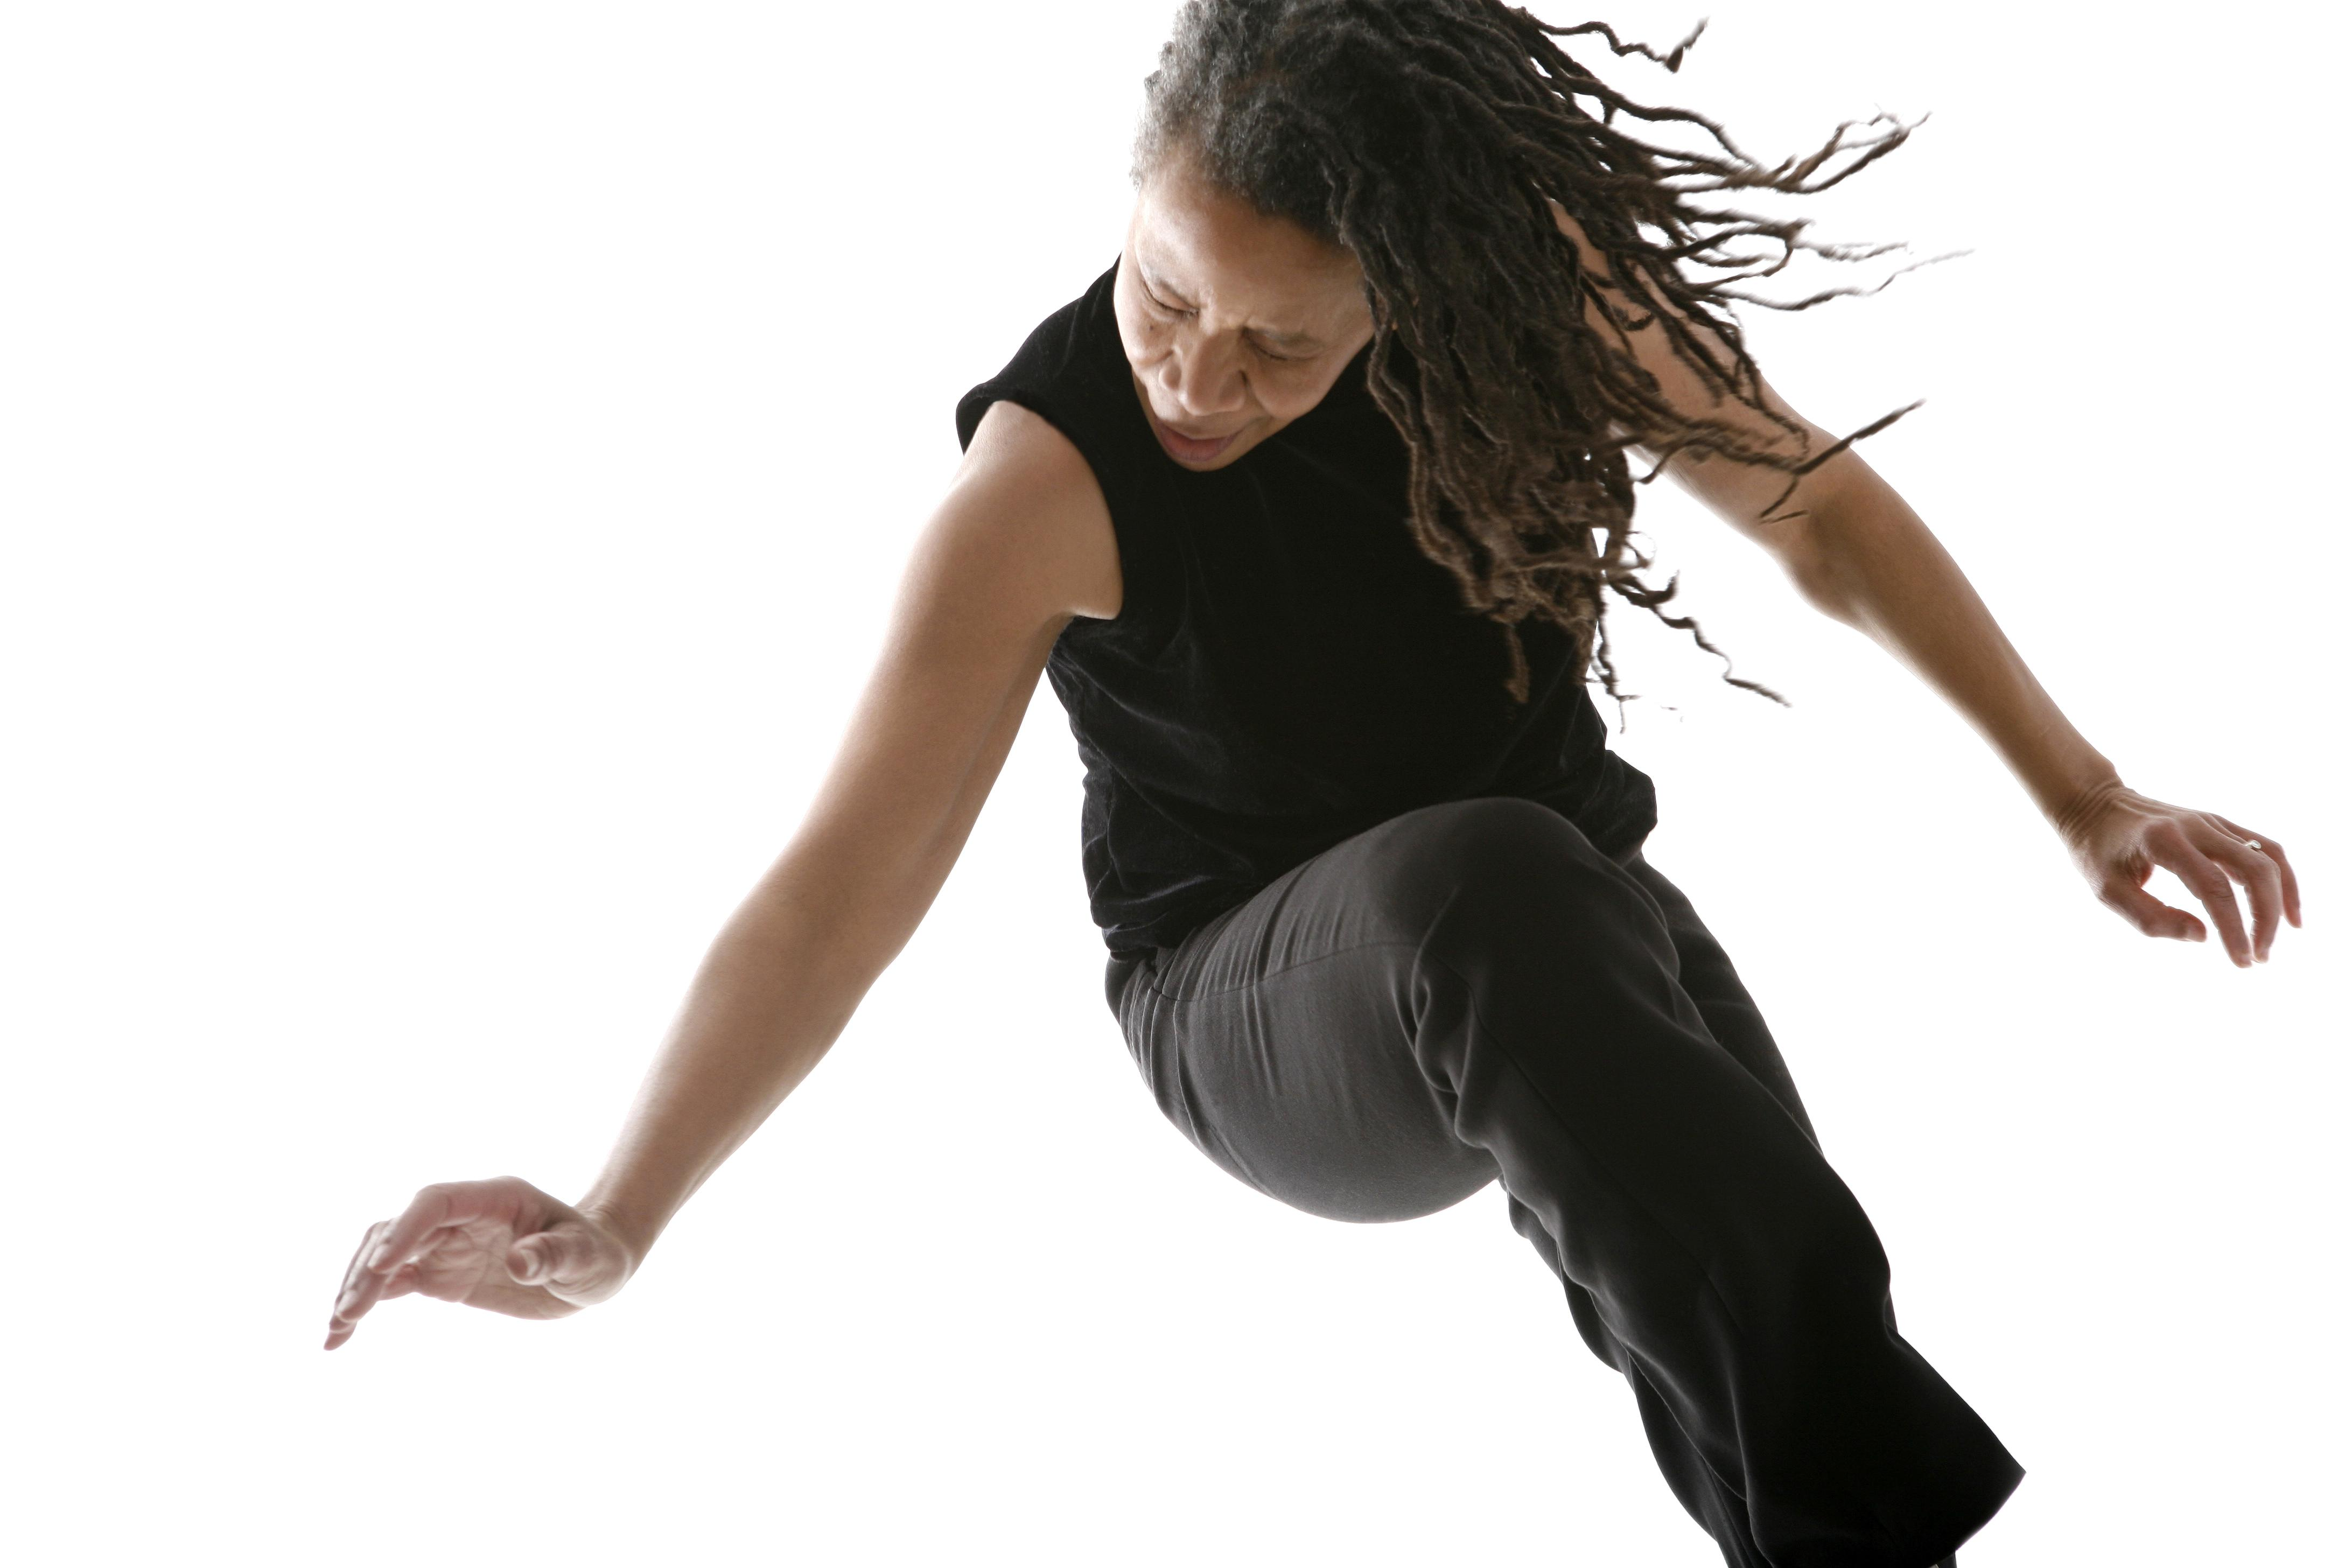 A woman pivots on her left leg, raising her right knee and ducking her head, her long dreadlocks swinging forward her as she turns.